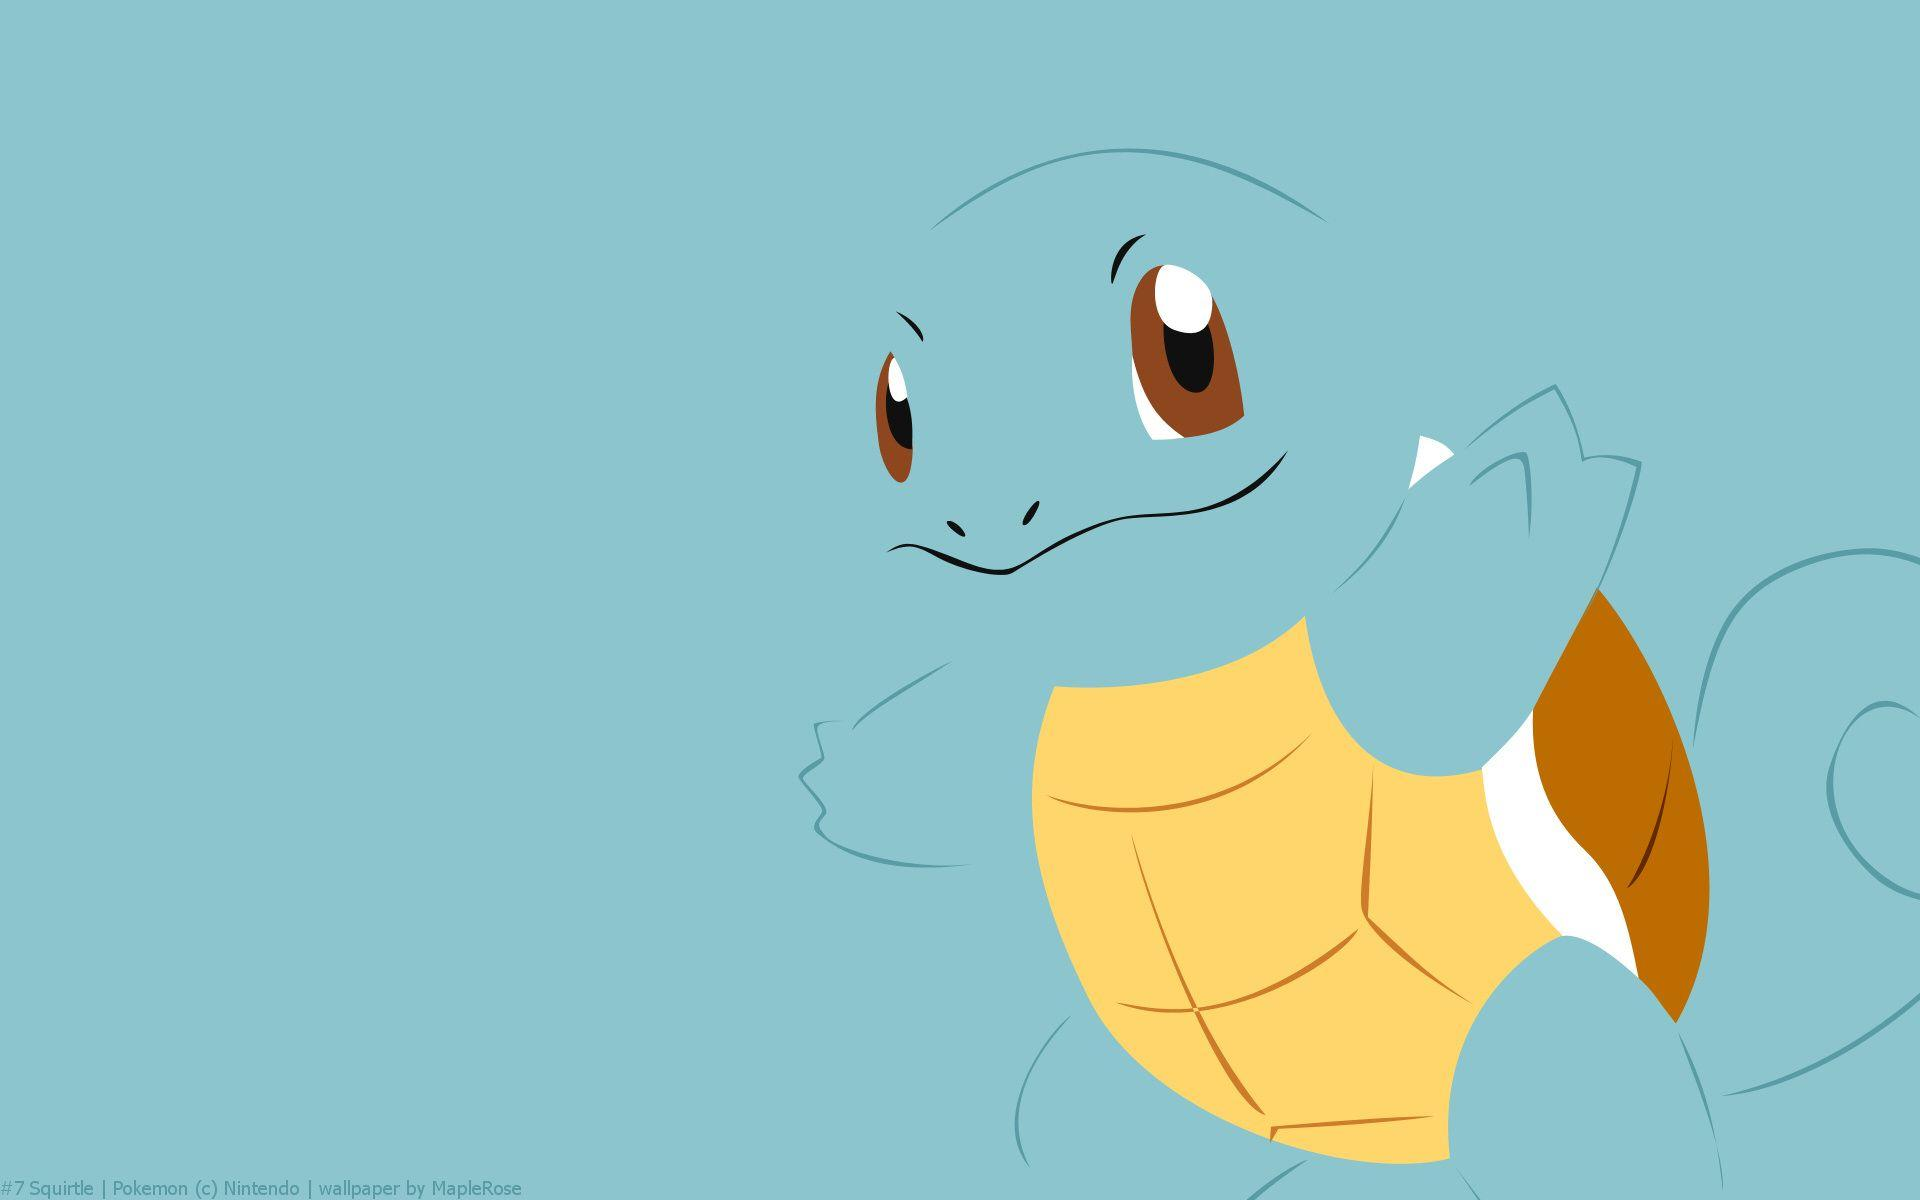 Squirtle Pokemon HD Wallpaper - Free HD wallpapers, Iphone ...